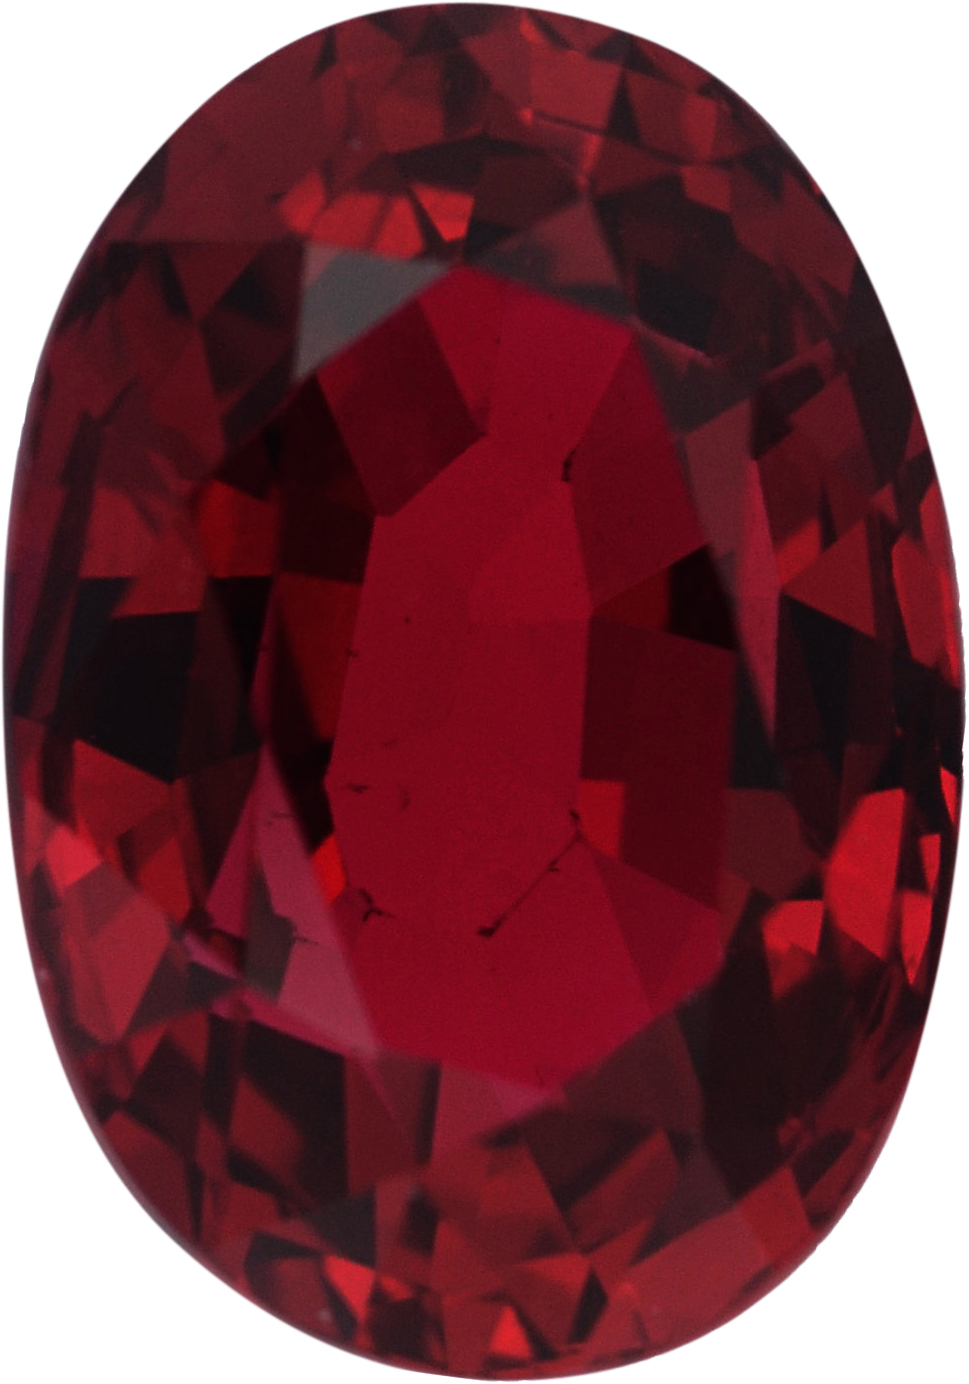 Pretty Loose Ruby Gem in Oval Cut,  Red Color, 6.85 x 4.80 mm, 1.14 carats